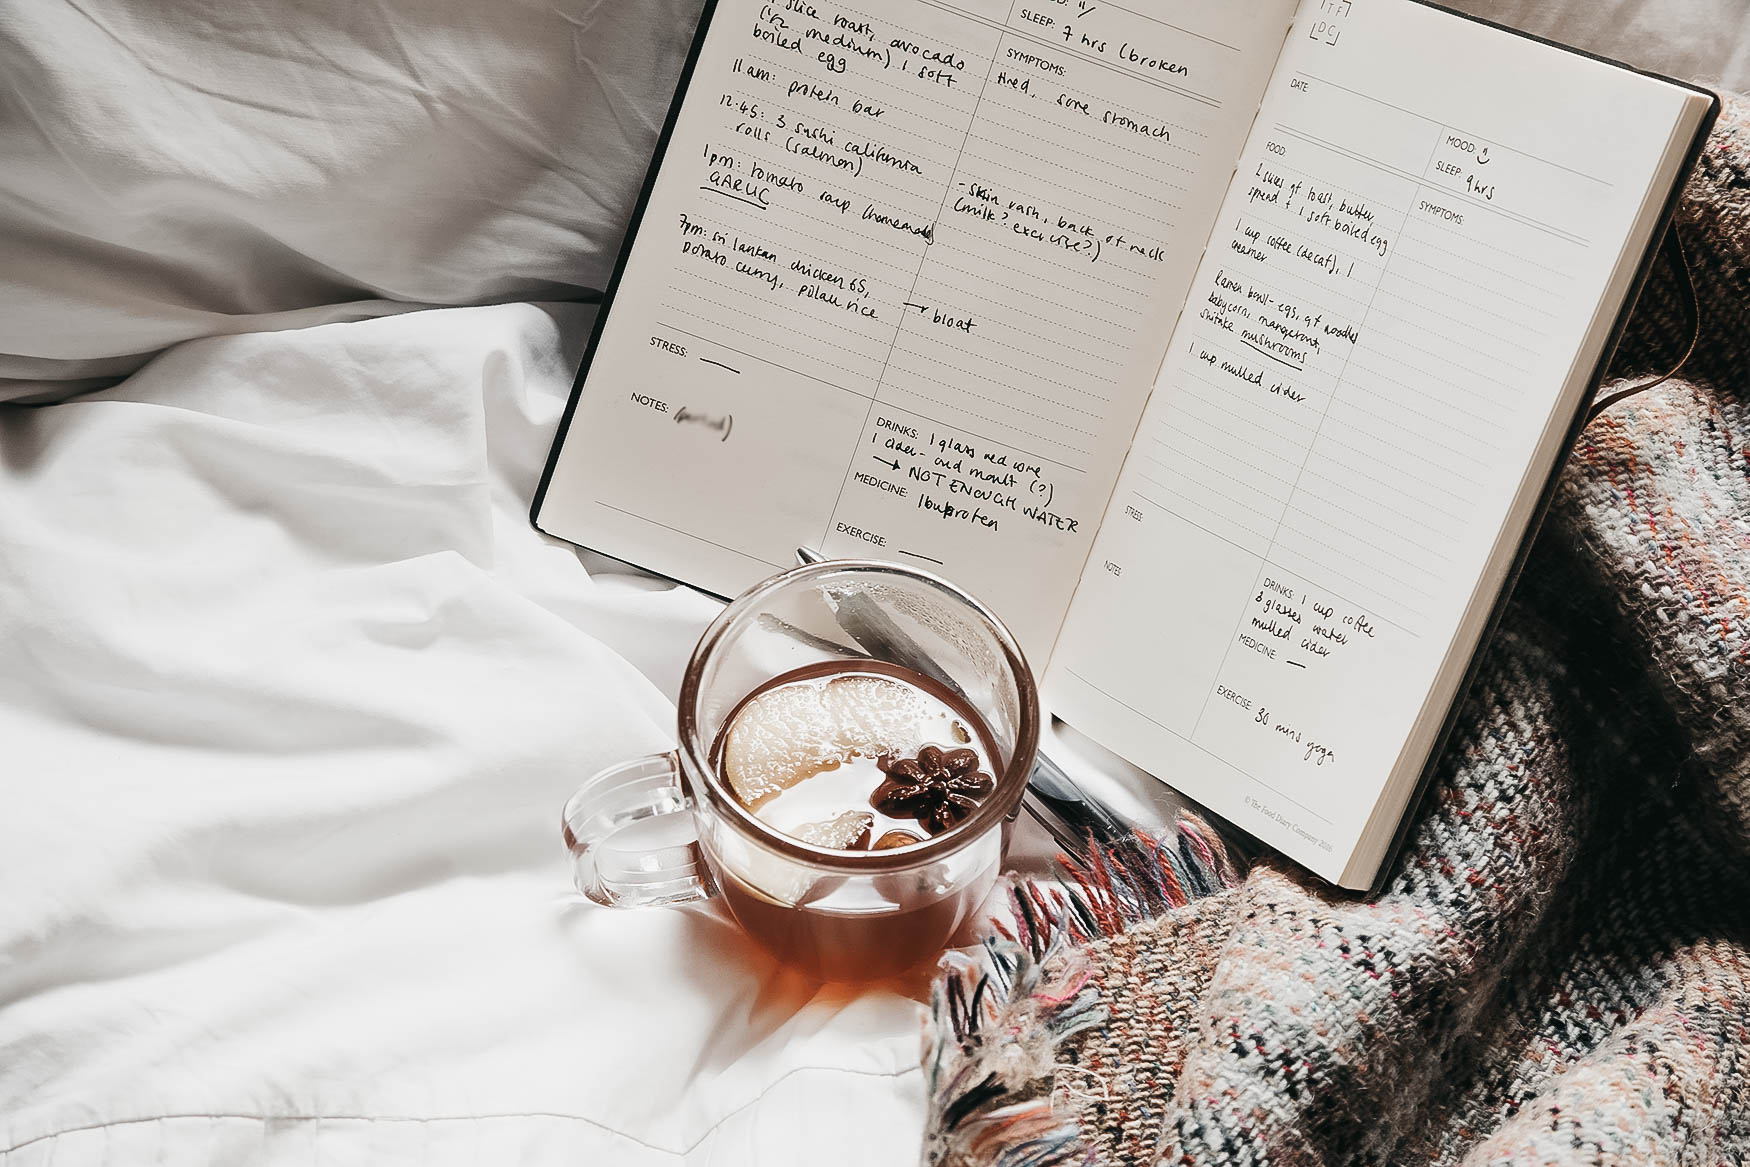 cosy blanket and food diary on bed.jpg